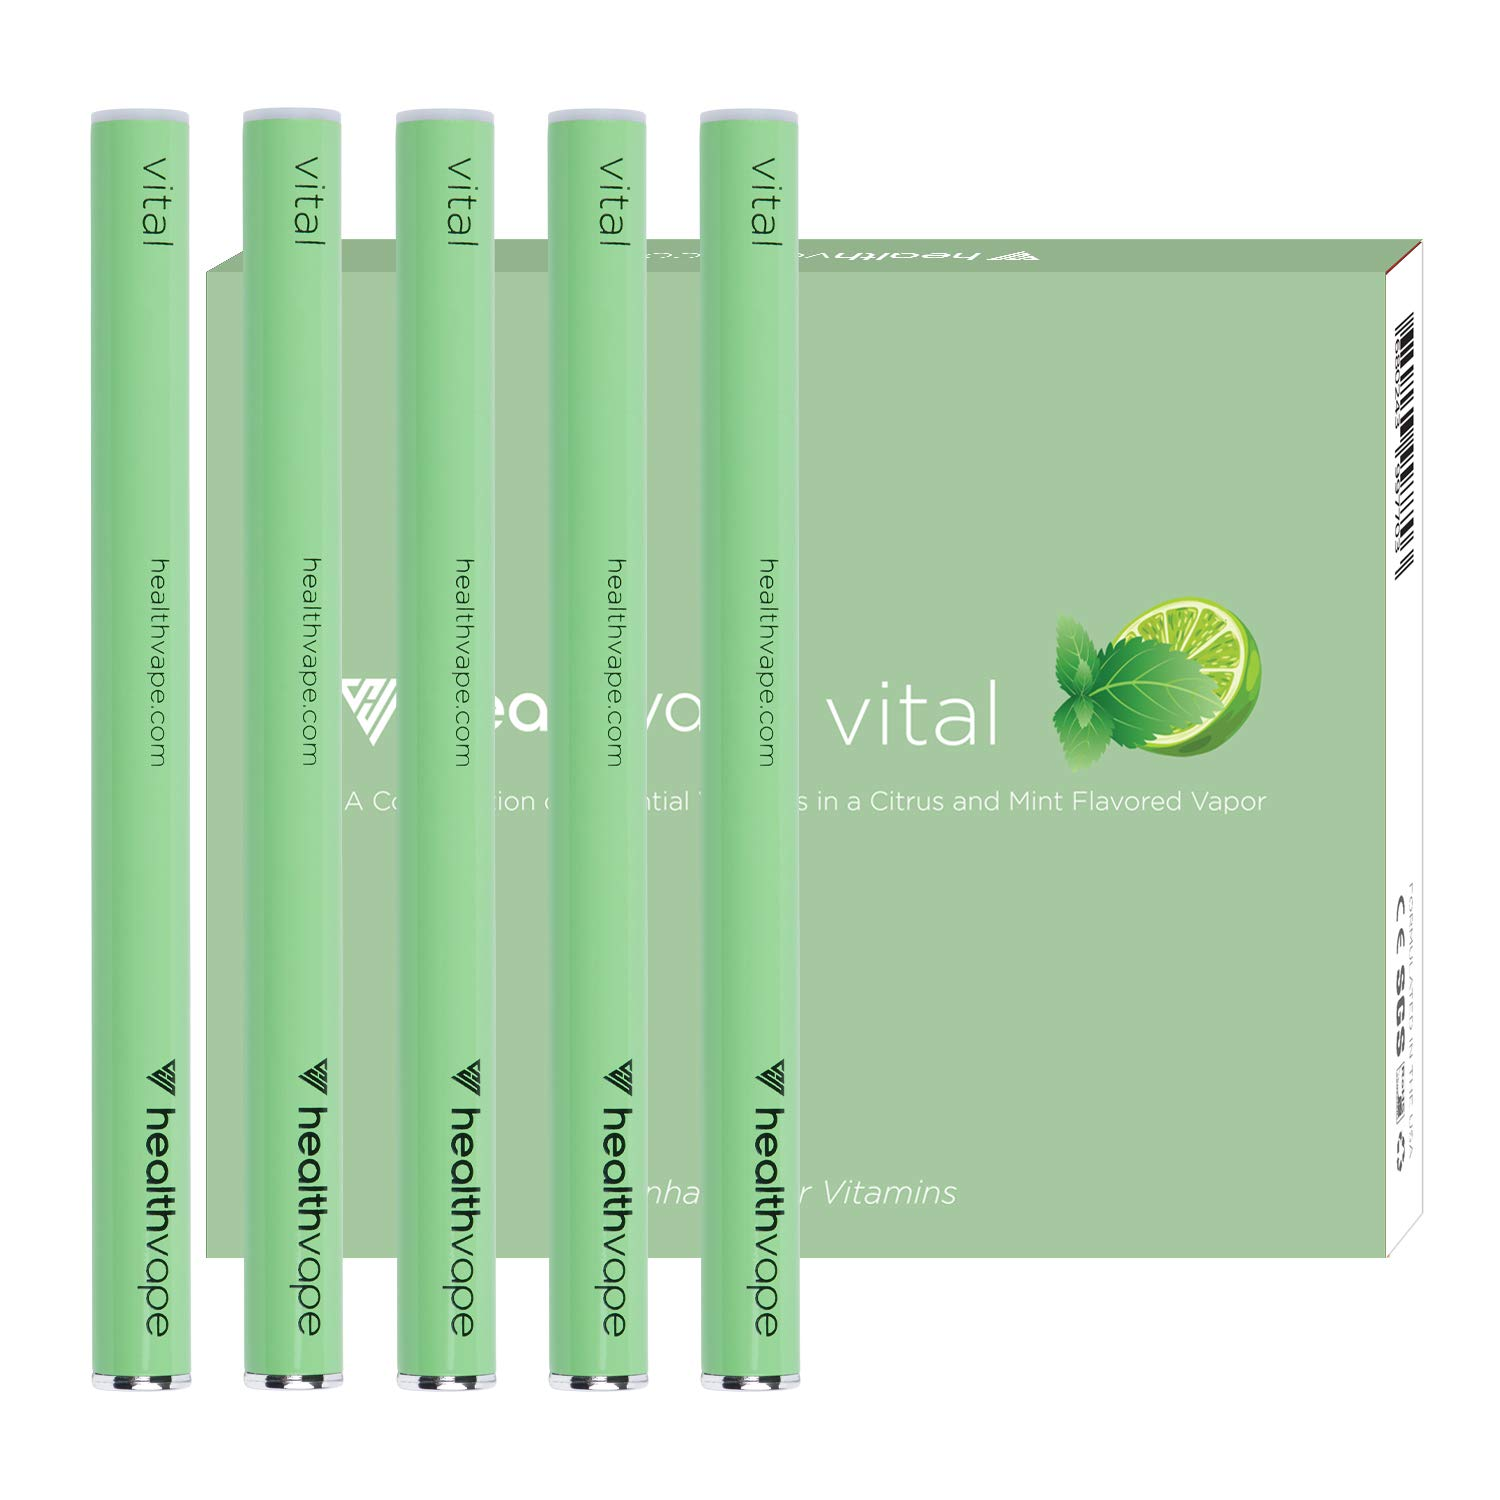 Vital Immune Support Vitamin and Antioxidant Inhaler Pen - CoQ10, Vitamin C, Vitamin B12, Vitamin E, Vitamin D, Essential Oils - Mint Flavored Healthy Immune Support - 5 Pack - by Health Vape